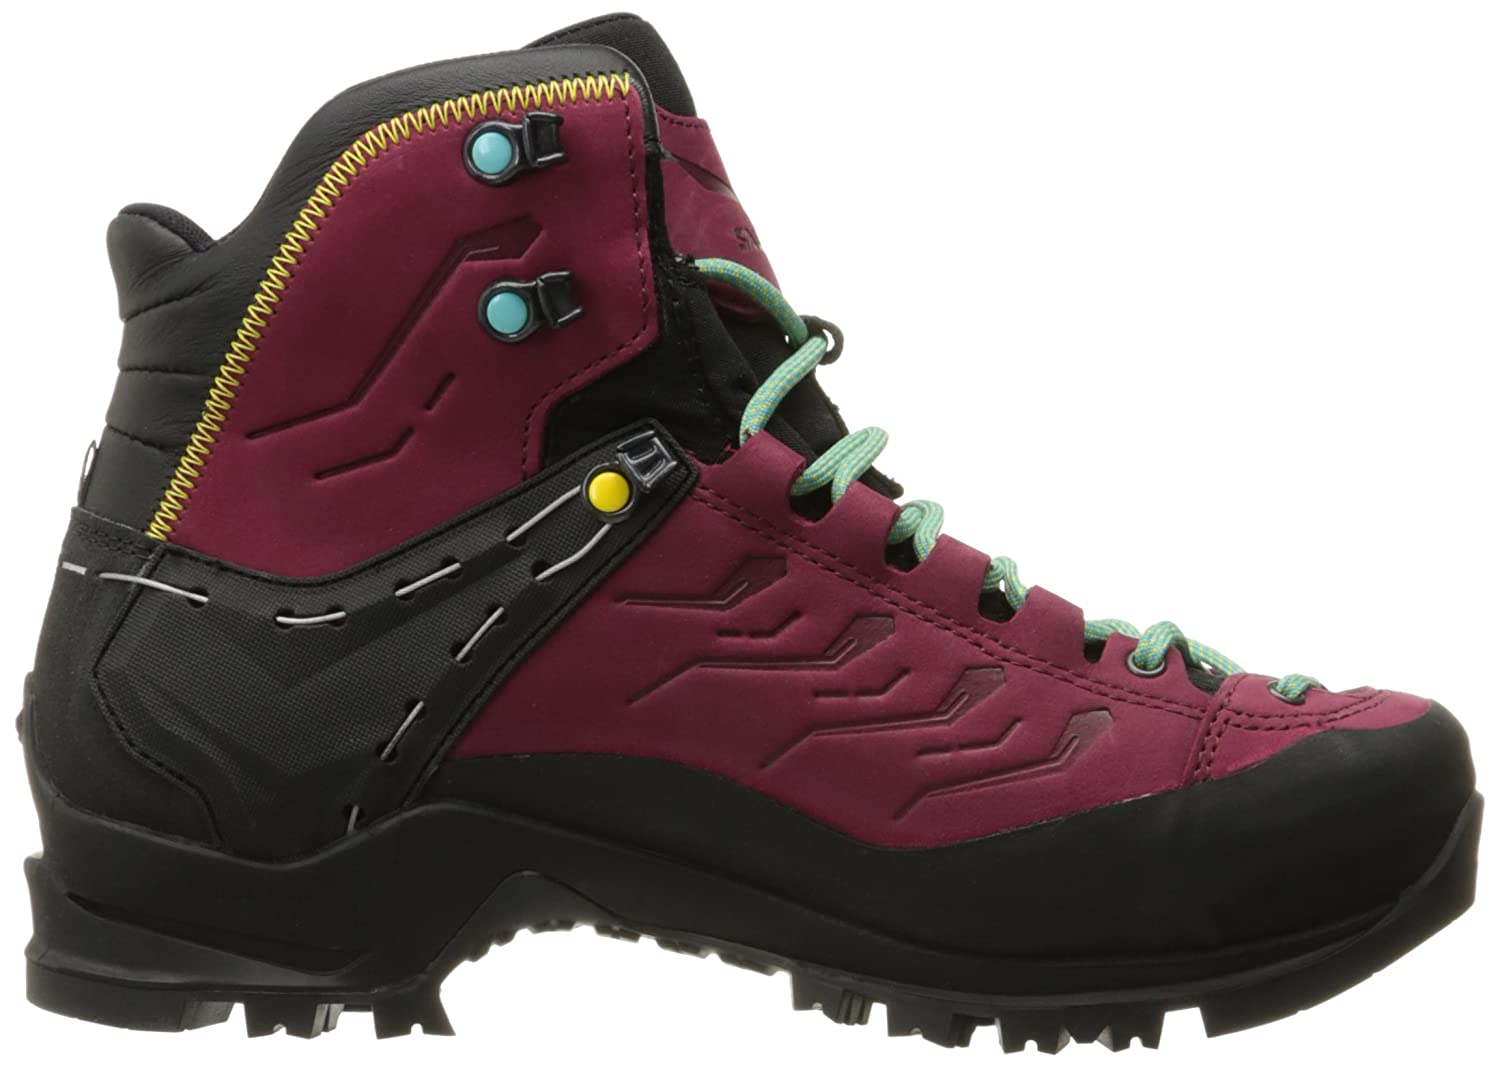 Salewa Women's Ws Rapace GTX High Rise Hiking Boots, (Tawny Port/Limelight 8874)